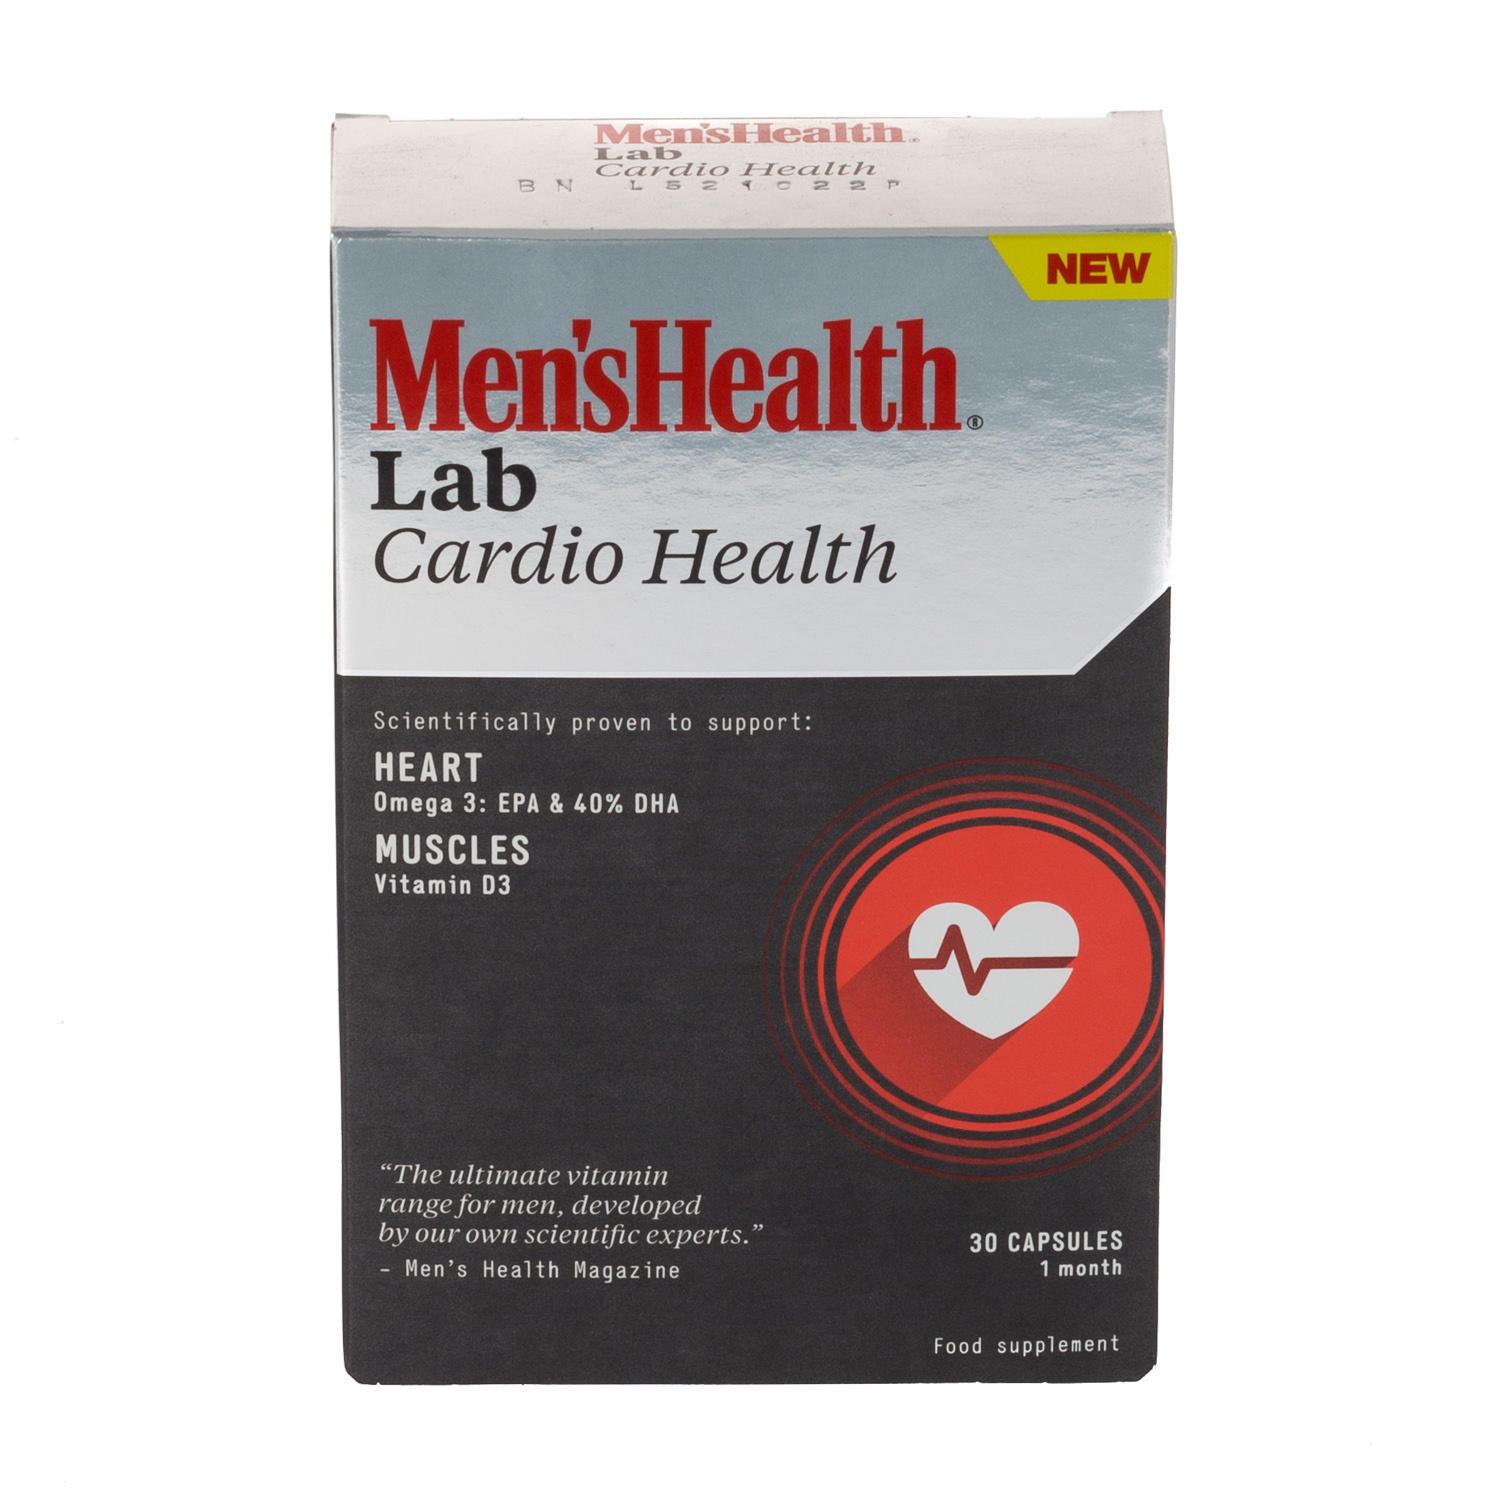 Mens Health Cardio Health 30 Capsules 1 Month Supply